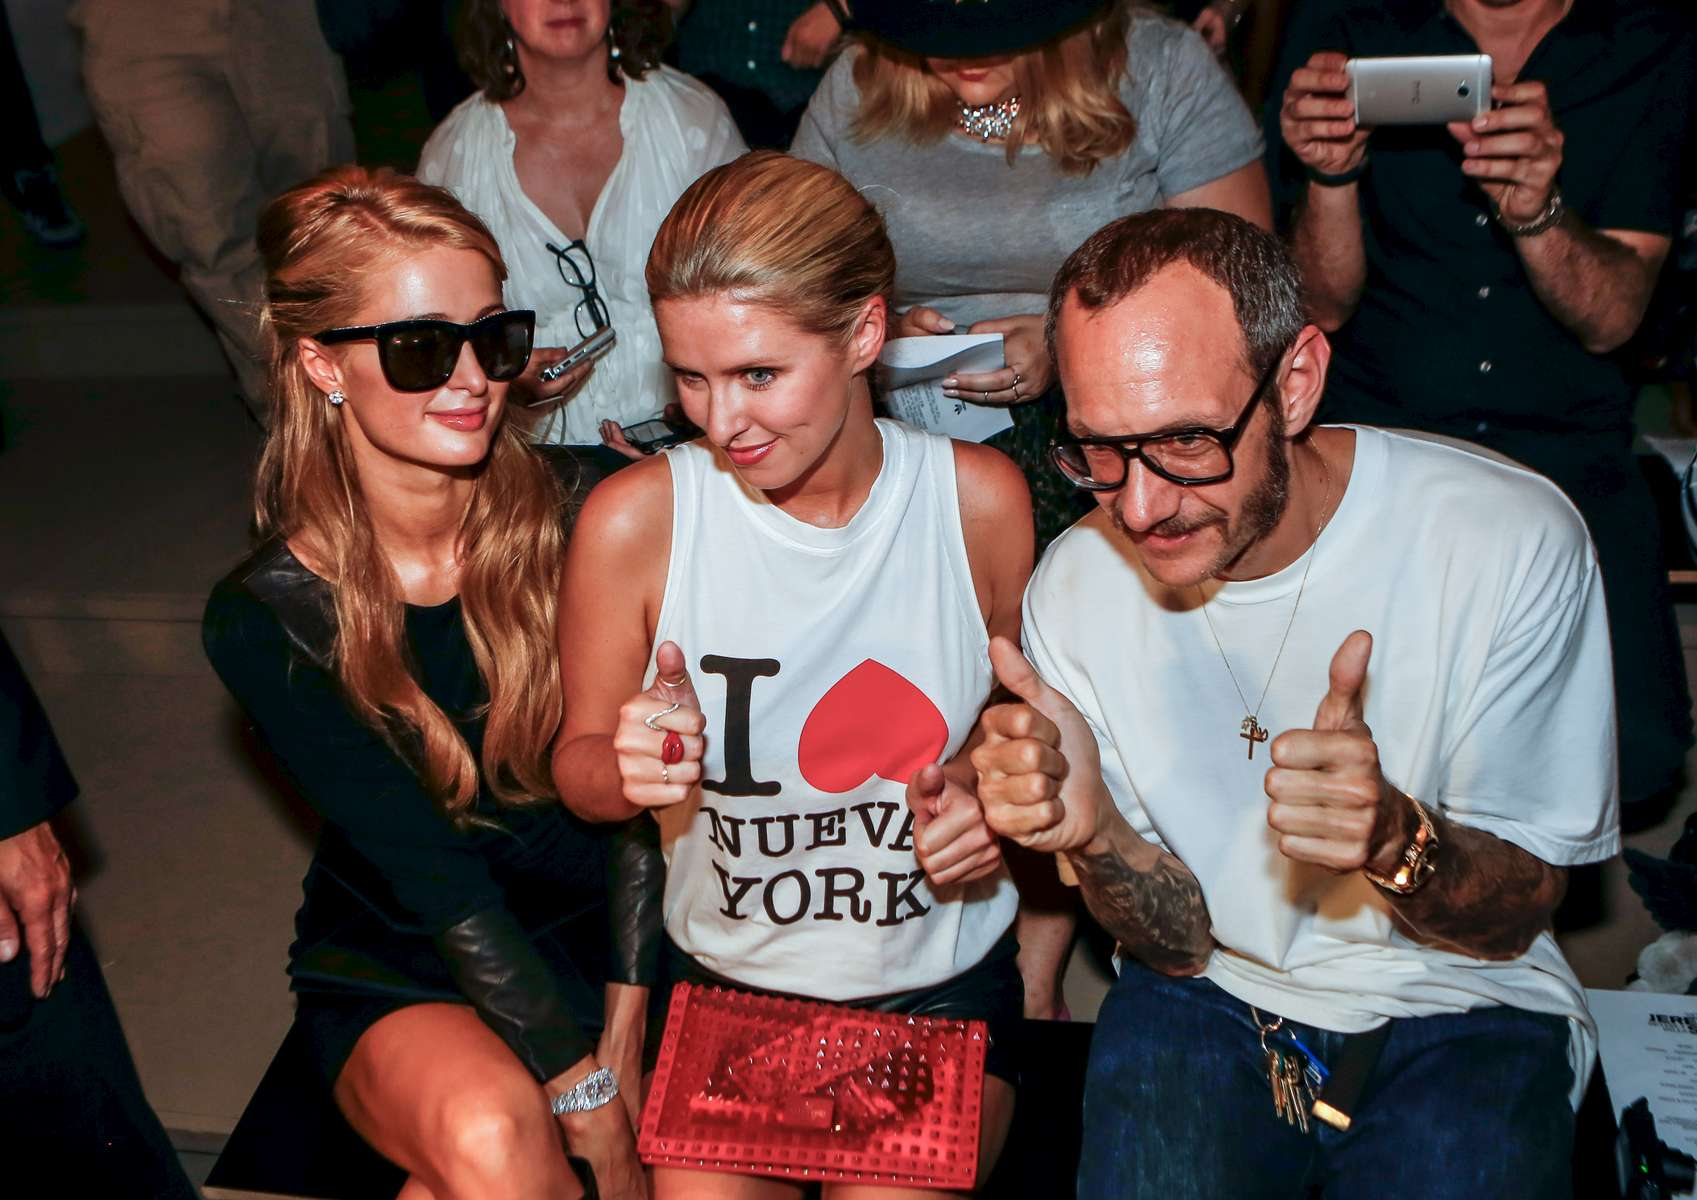 Paris and Nicky Hilton was joined by celebrity photographer Terry Richardson (right) as they attend the Jeremy Scott runway show at 450 W. 15th St, for New York Fashion Week Fall 2013